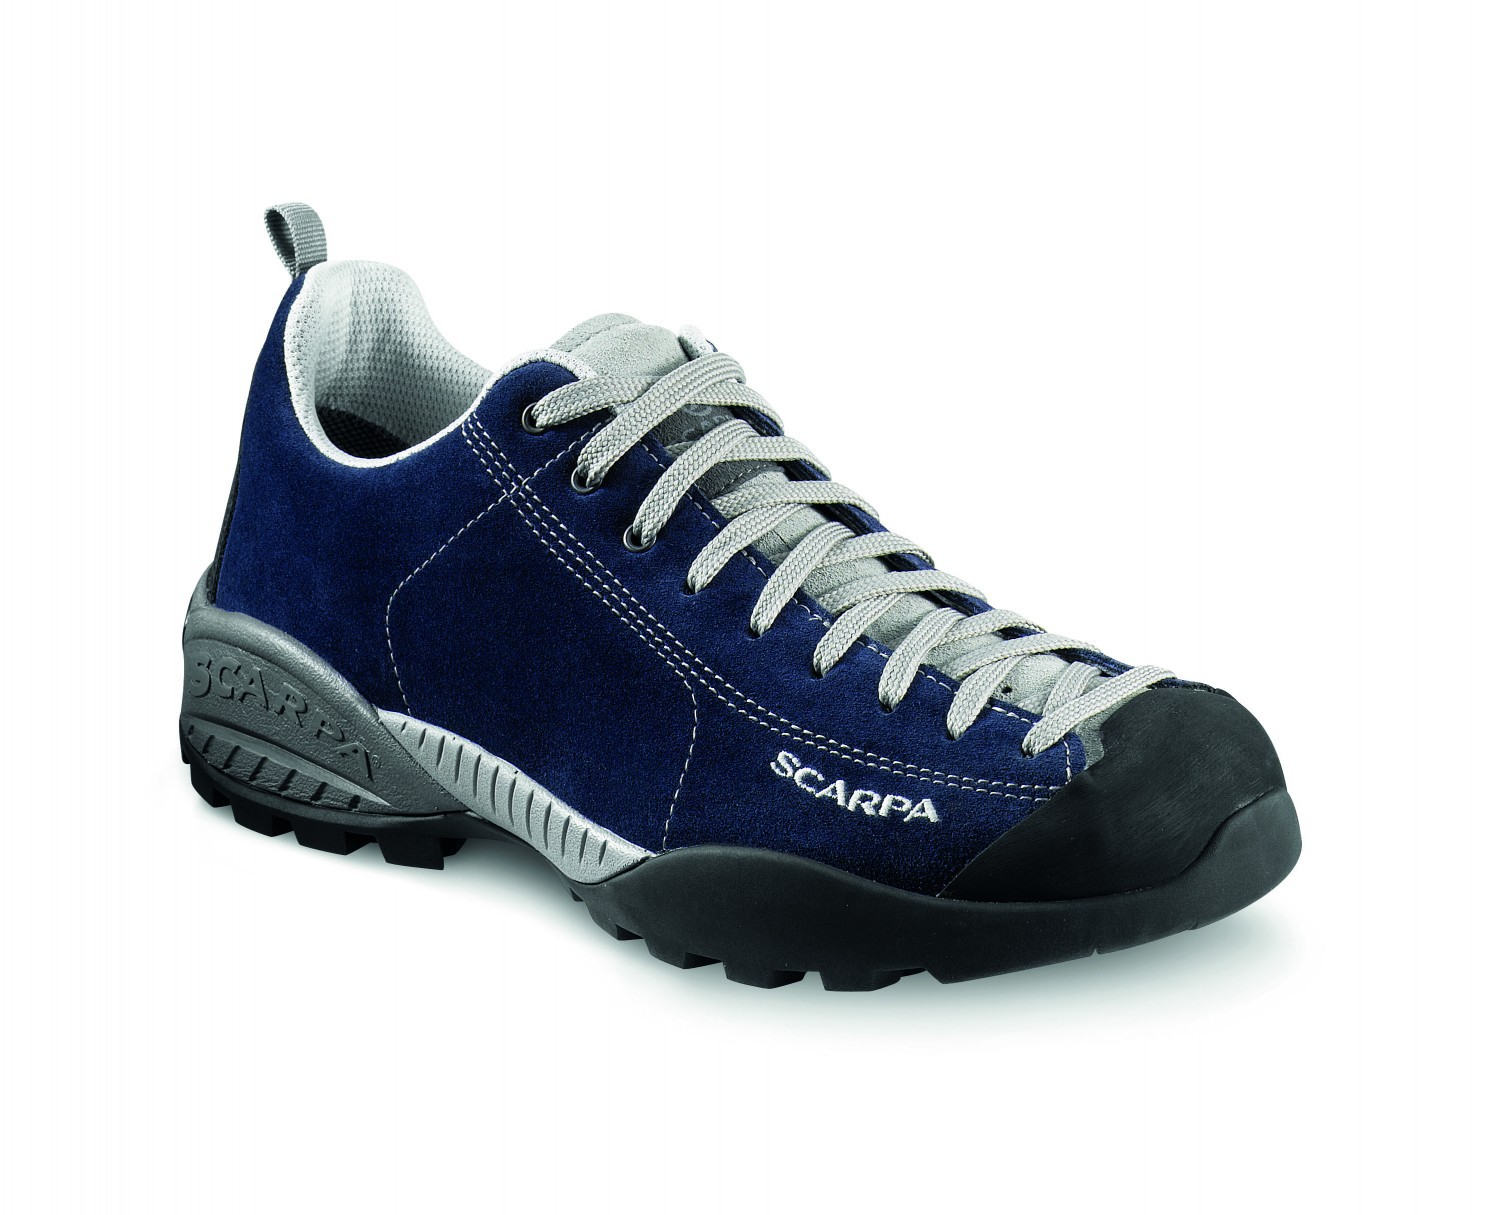 Scarpa - Mojito GTX Night - Approach Shoes - 39,5